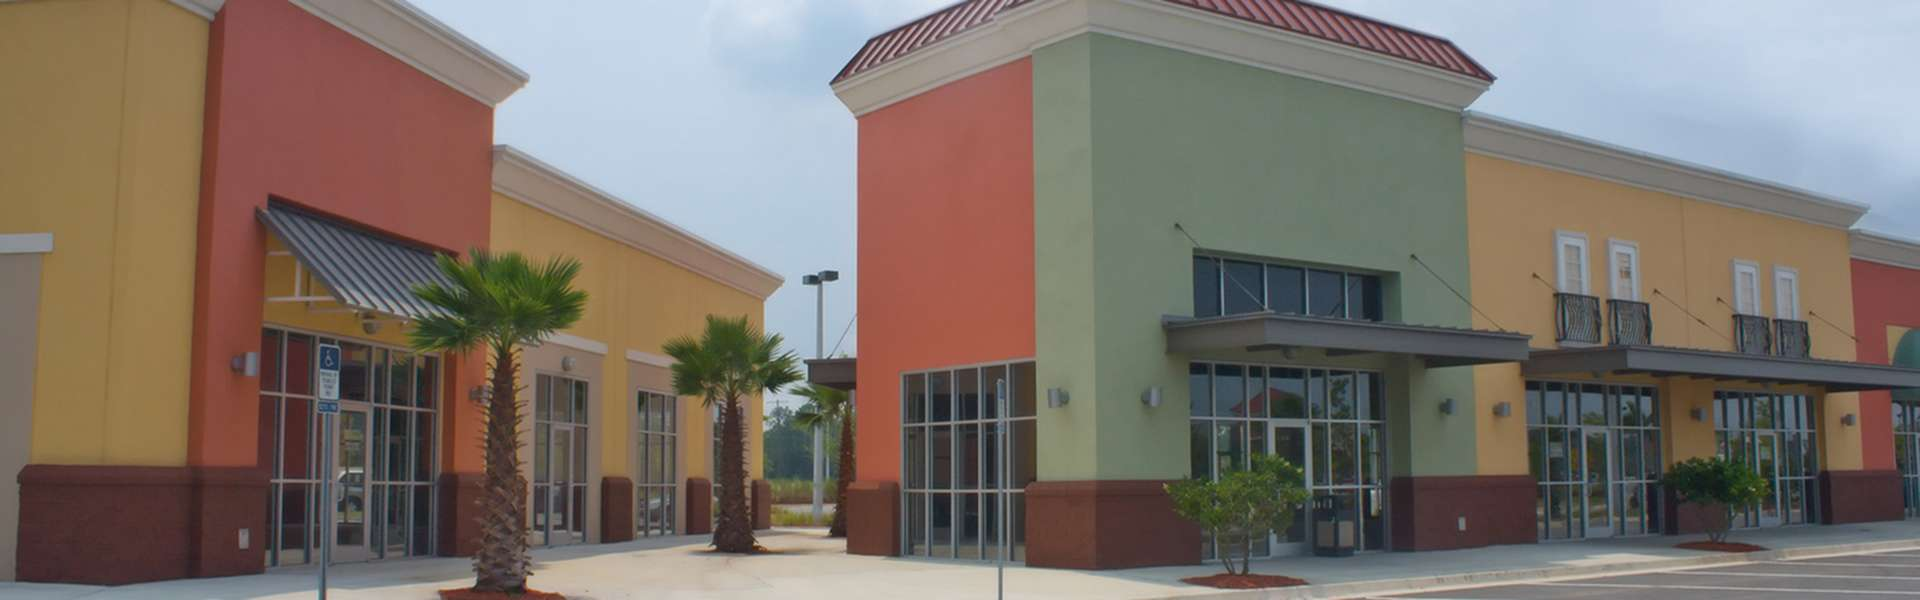 construction management Strip Mall